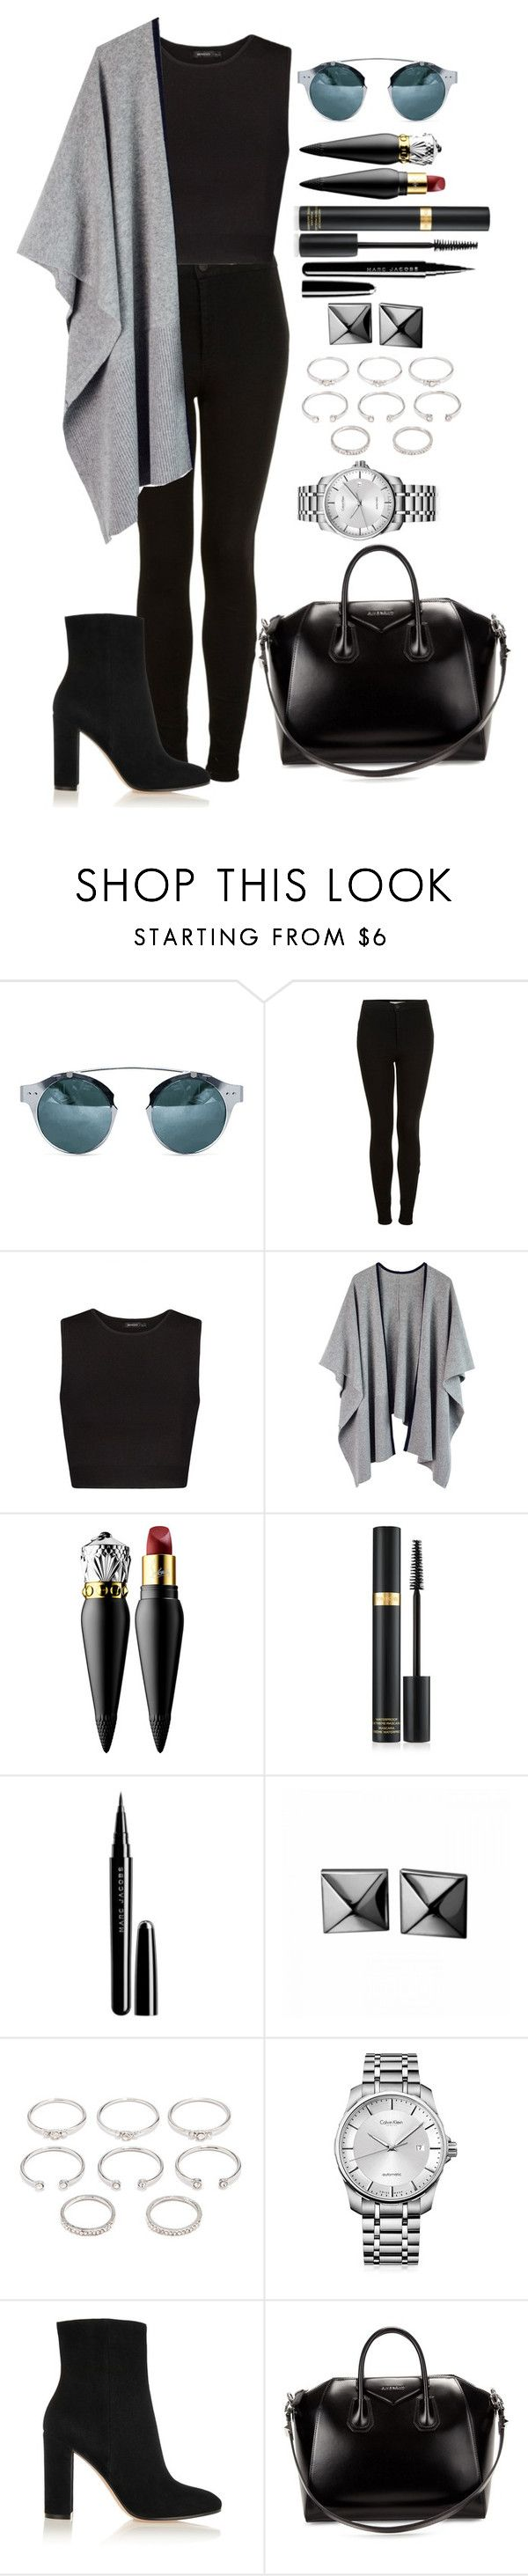 """""""Untitled #1279"""" by fabianarveloc on Polyvore featuring Topshop, MANGO, Christian Louboutin, Marc Jacobs, Waterford, Forever 21, Calvin Klein, Gianvito Rossi and Givenchy"""